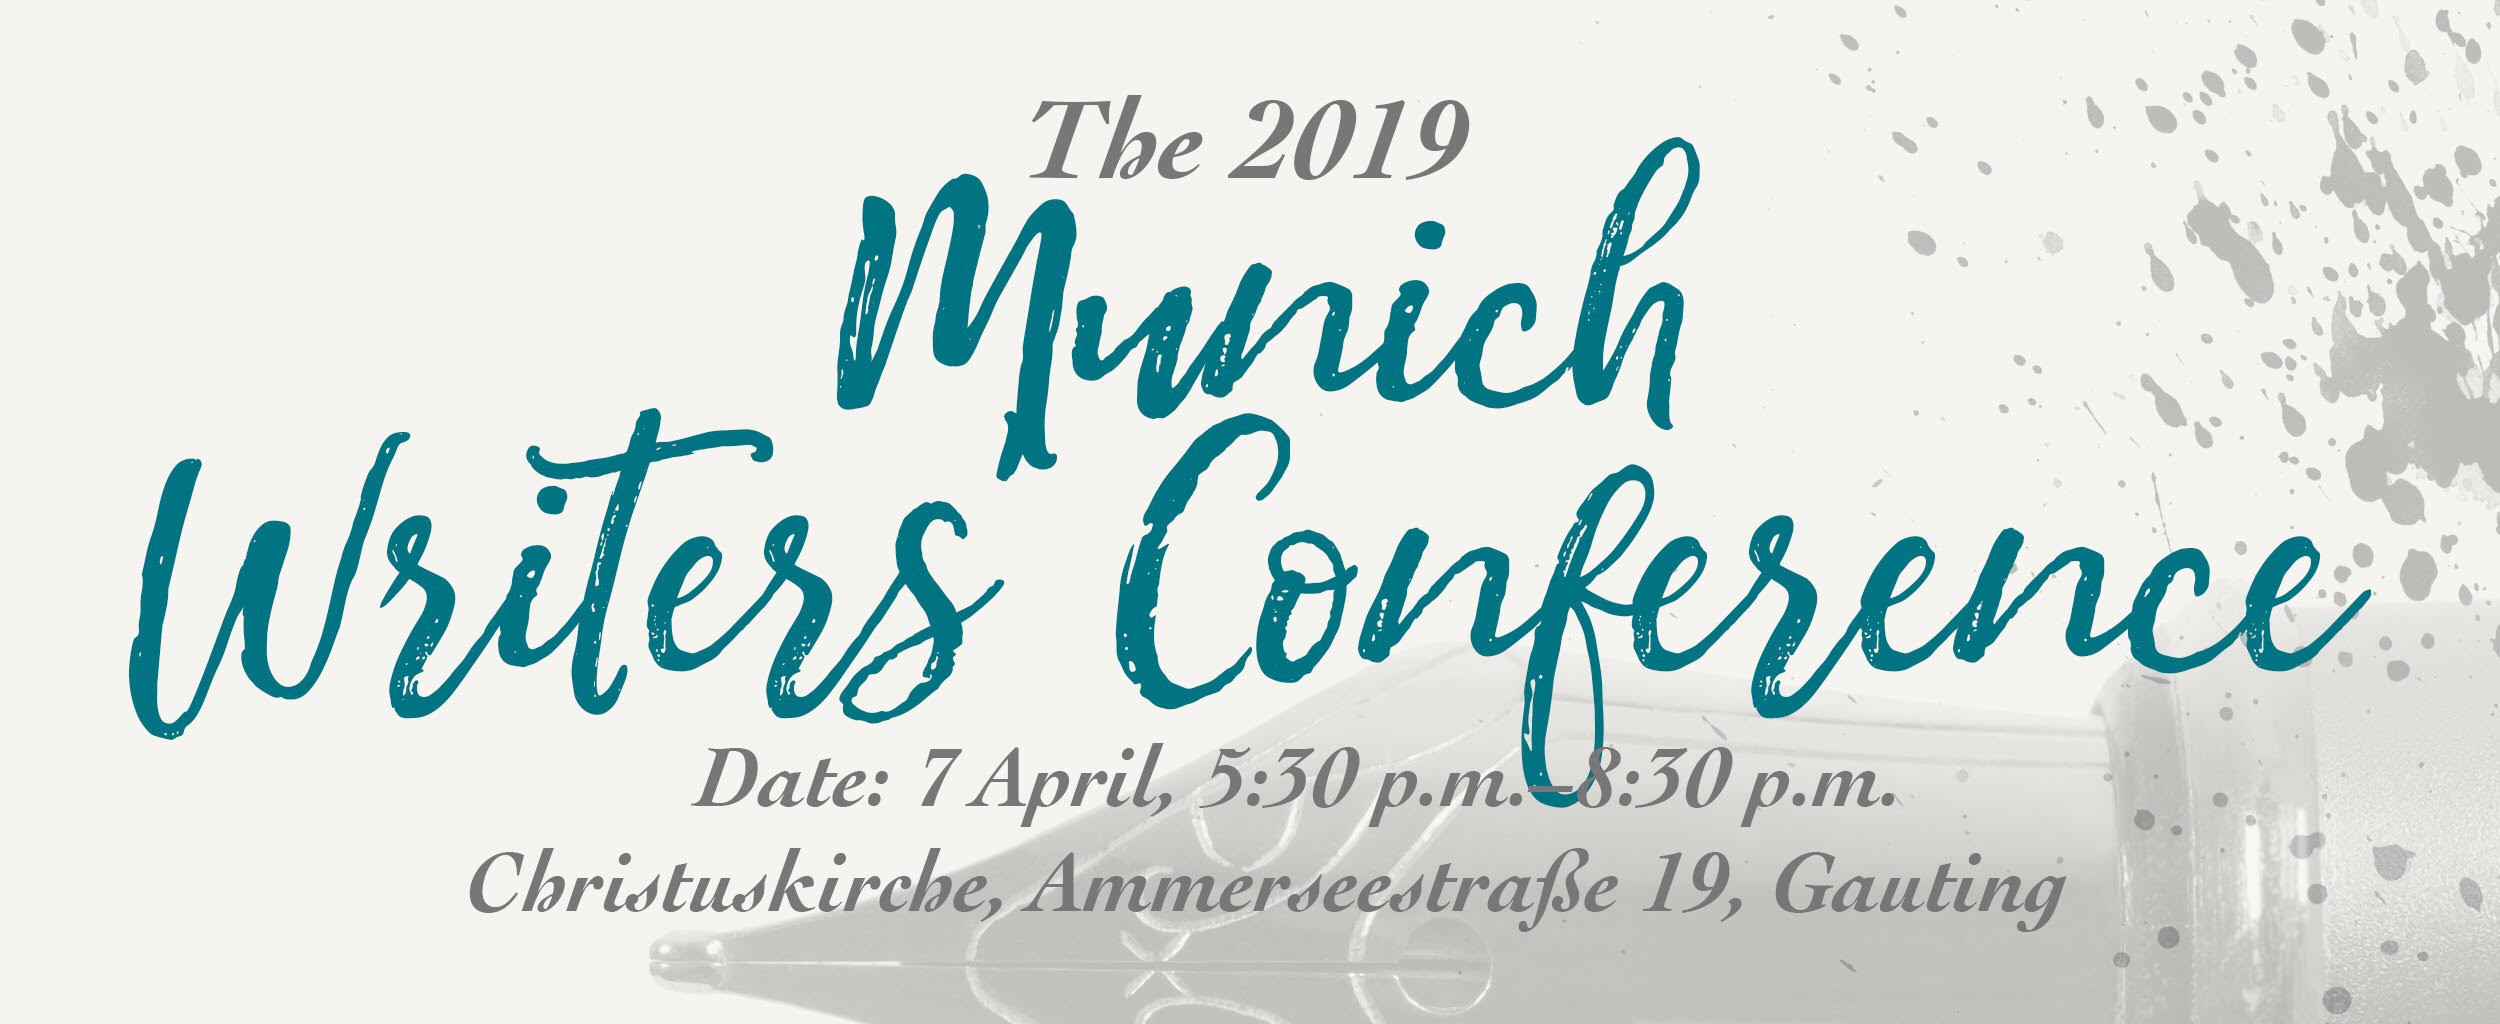 The 2019 Munich Writers' Conference – 7 April